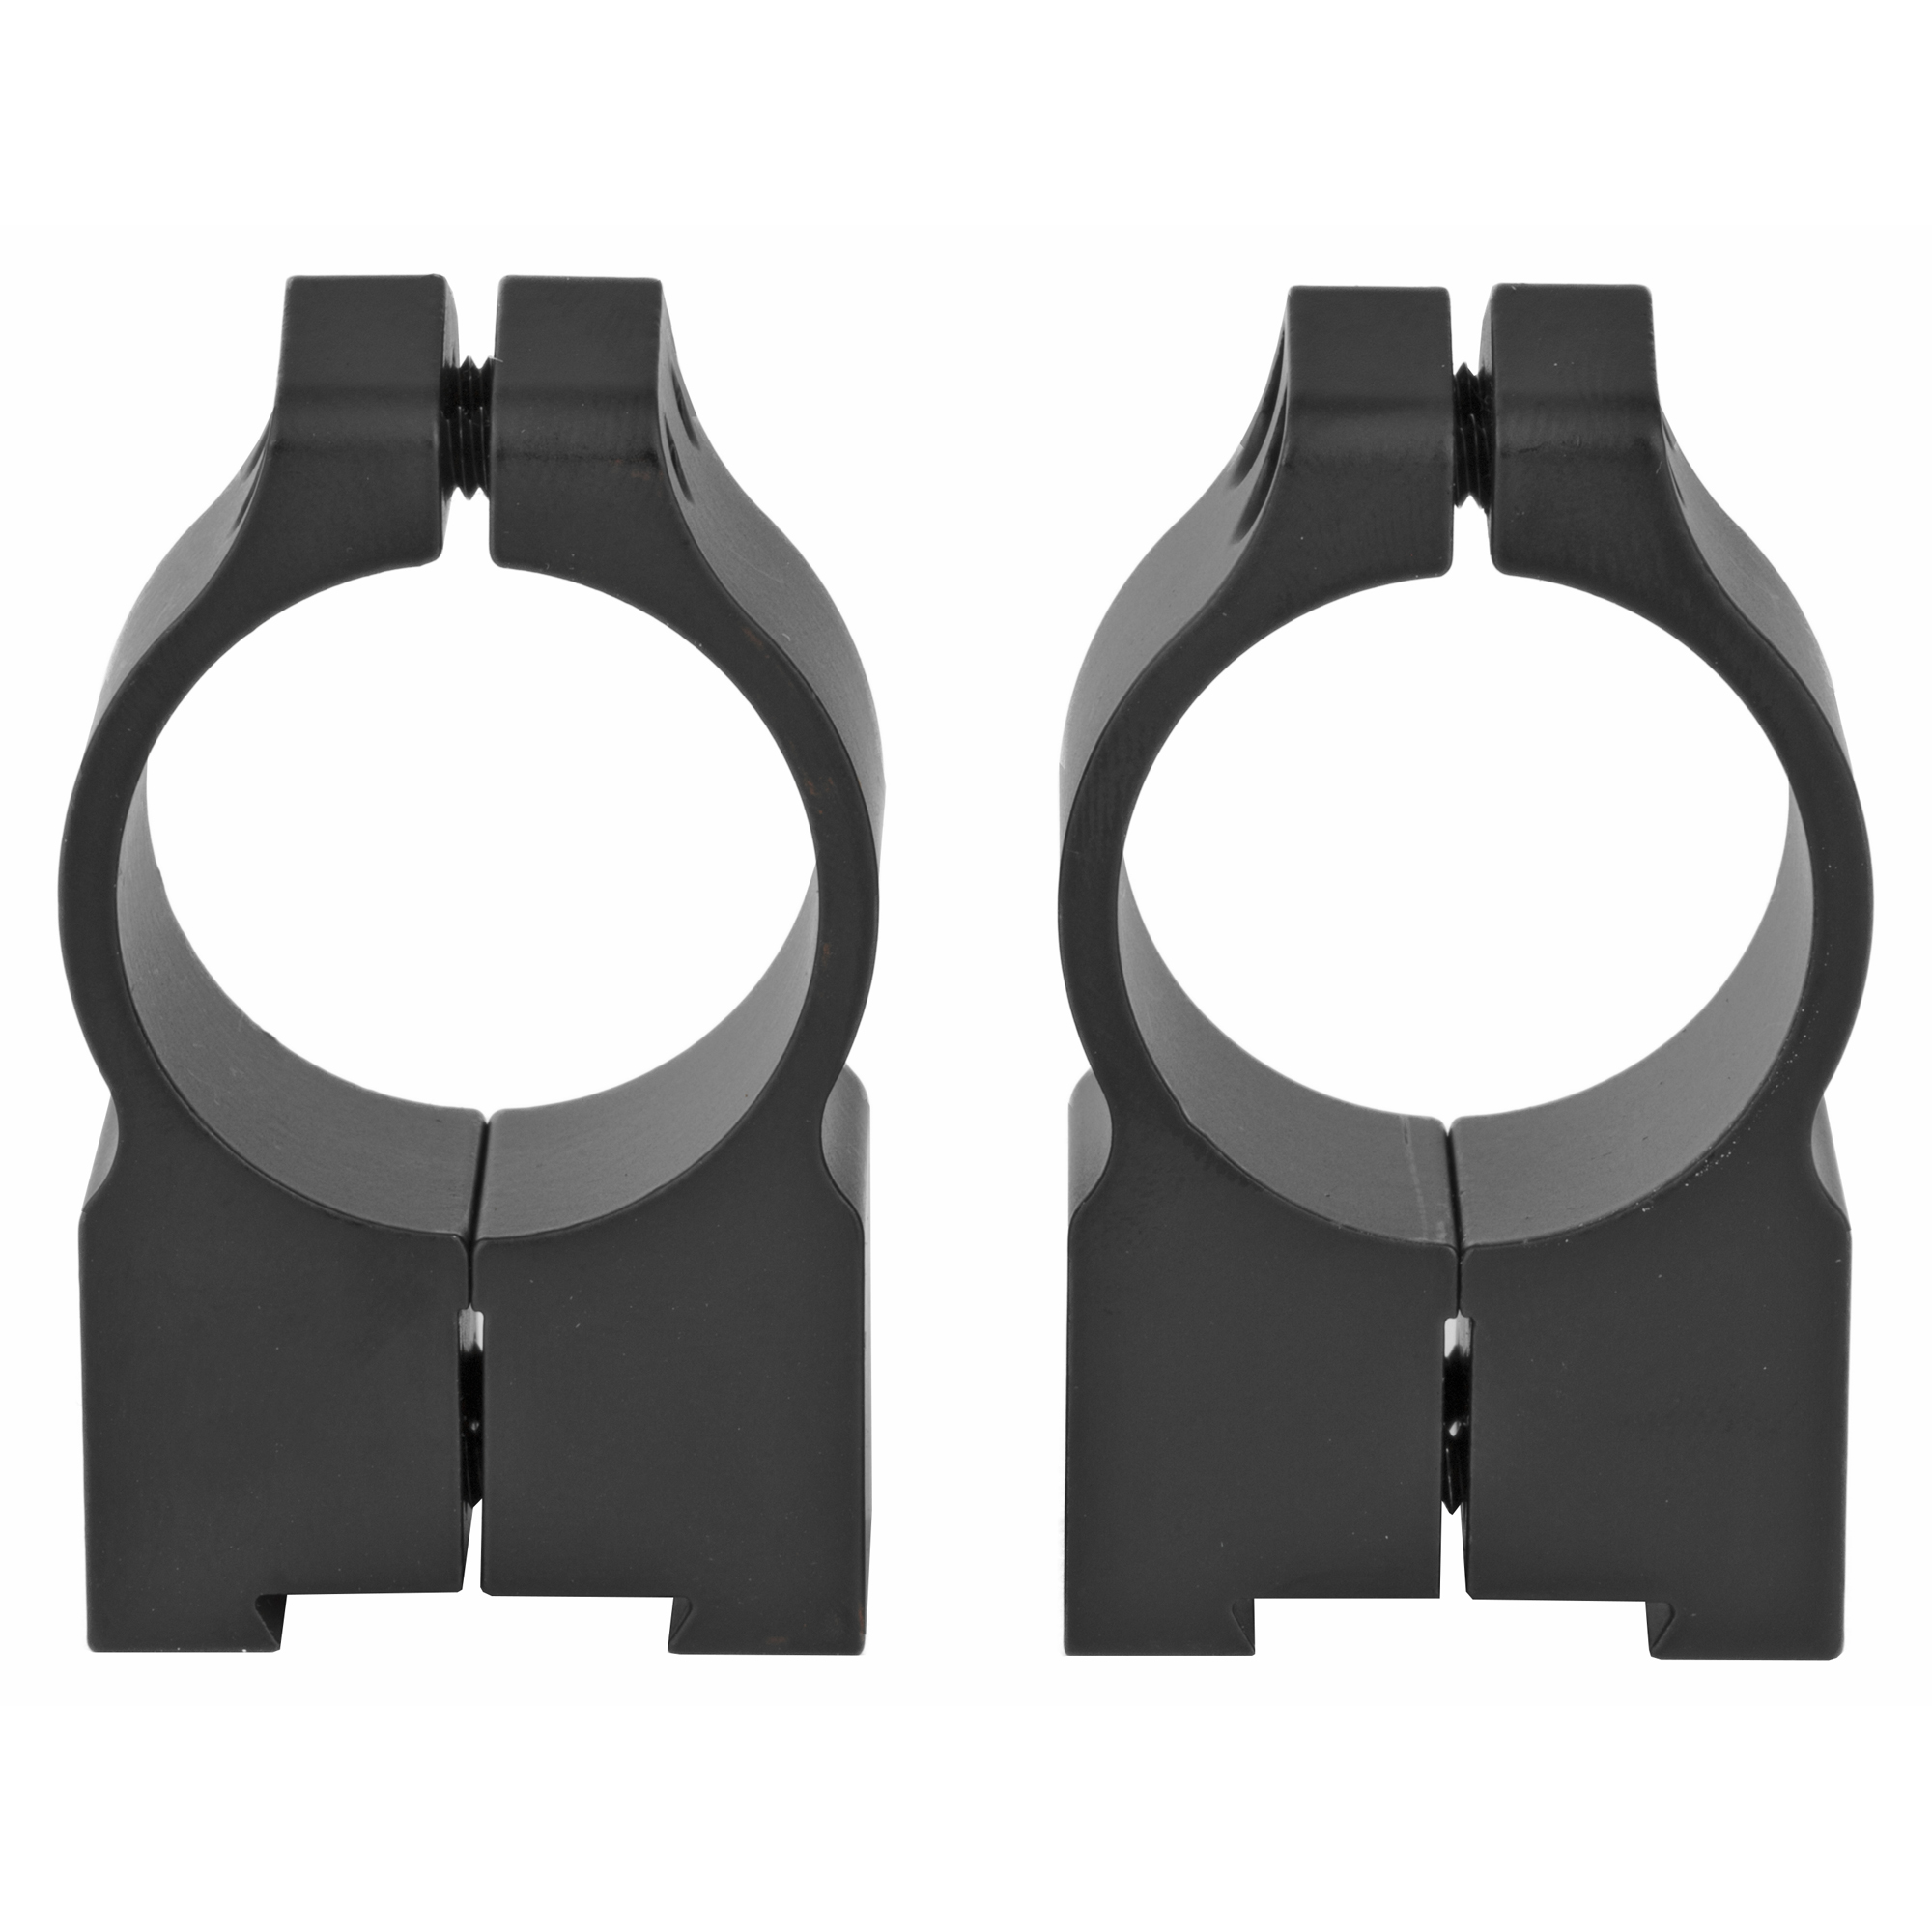 """Since each firearm manufacturer has their own proprietary mounting rail design"""" each ring model must be machined to exacting tolerances for proper fit and function. Because of this"""" the Warne CZ Rings are able to fit right onto the receiver's dovetail with no need for a mounting base."""